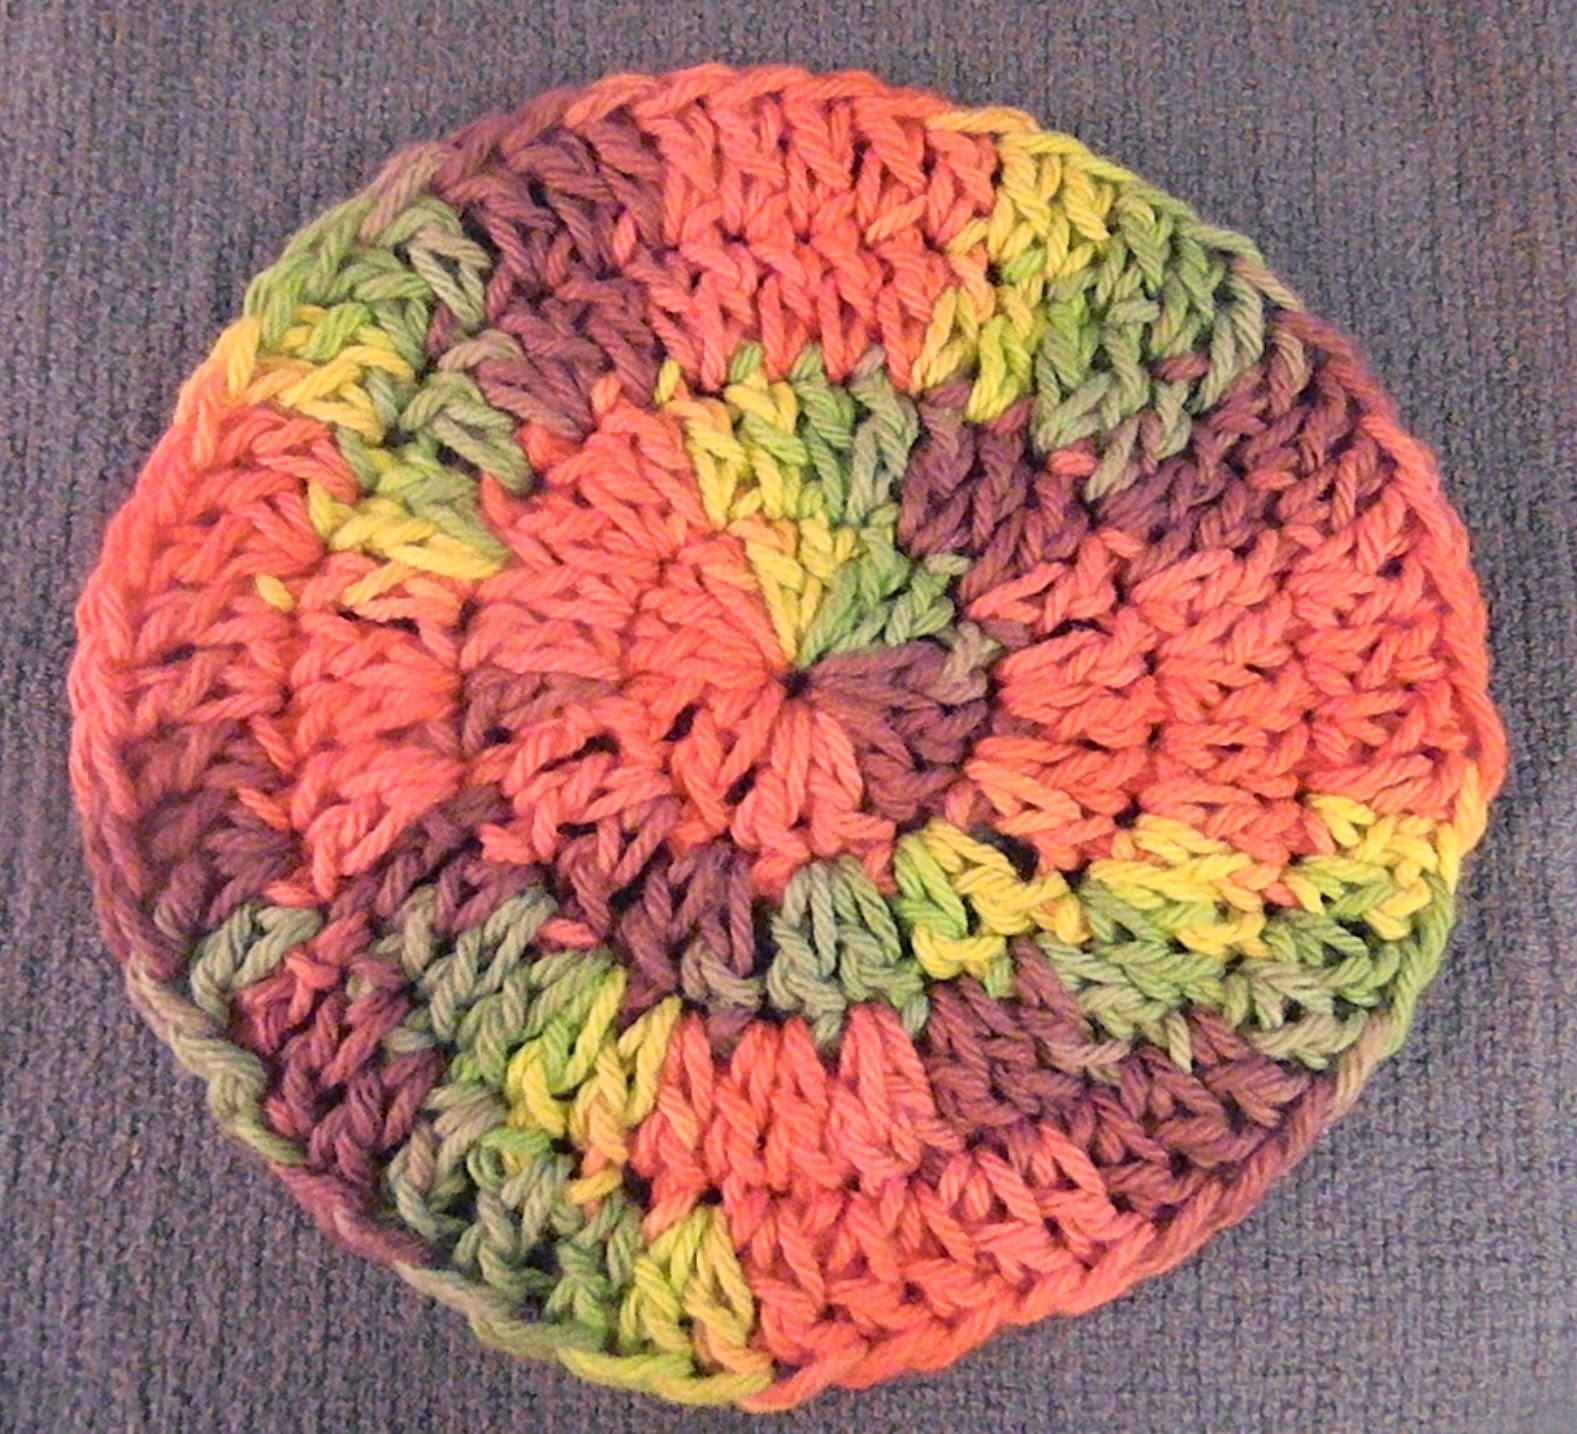 Crochet In the Round Fresh Life is Good Easy Crochet Dish Cloths In the Round Of Marvelous 44 Photos Crochet In the Round